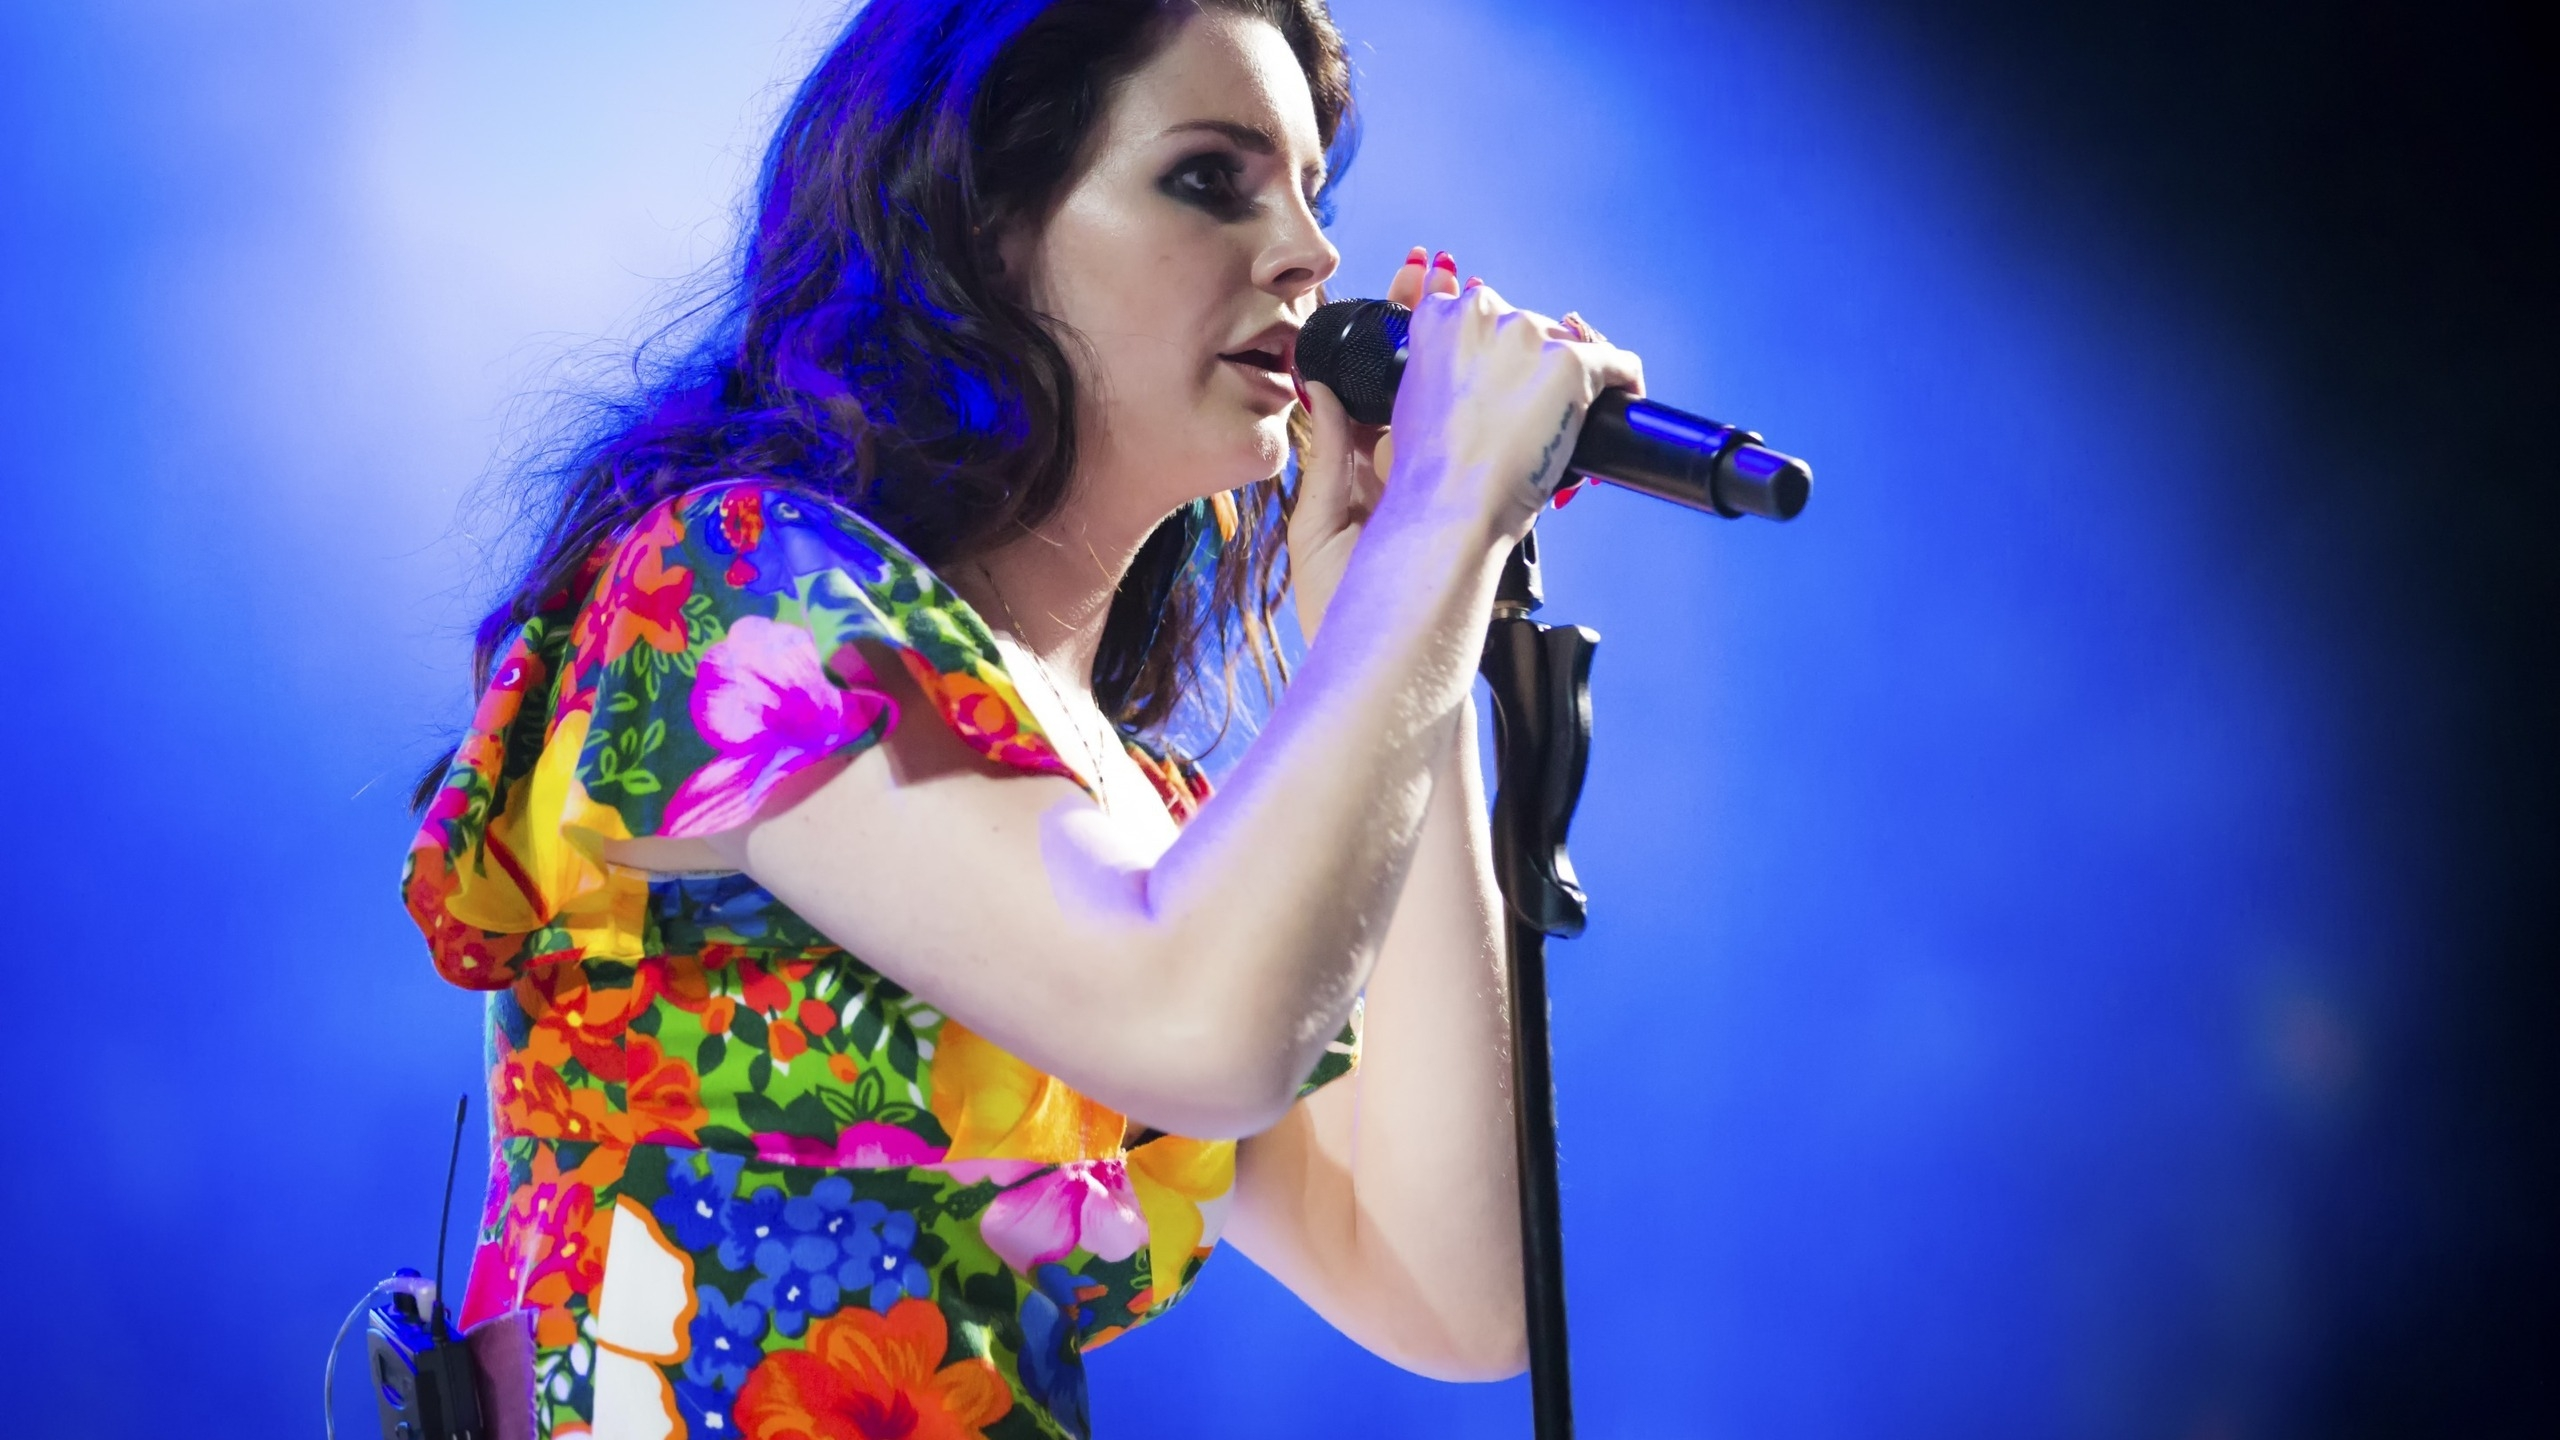 Lana Del Rey Performing Coachella for 2560x1440 HDTV resolution